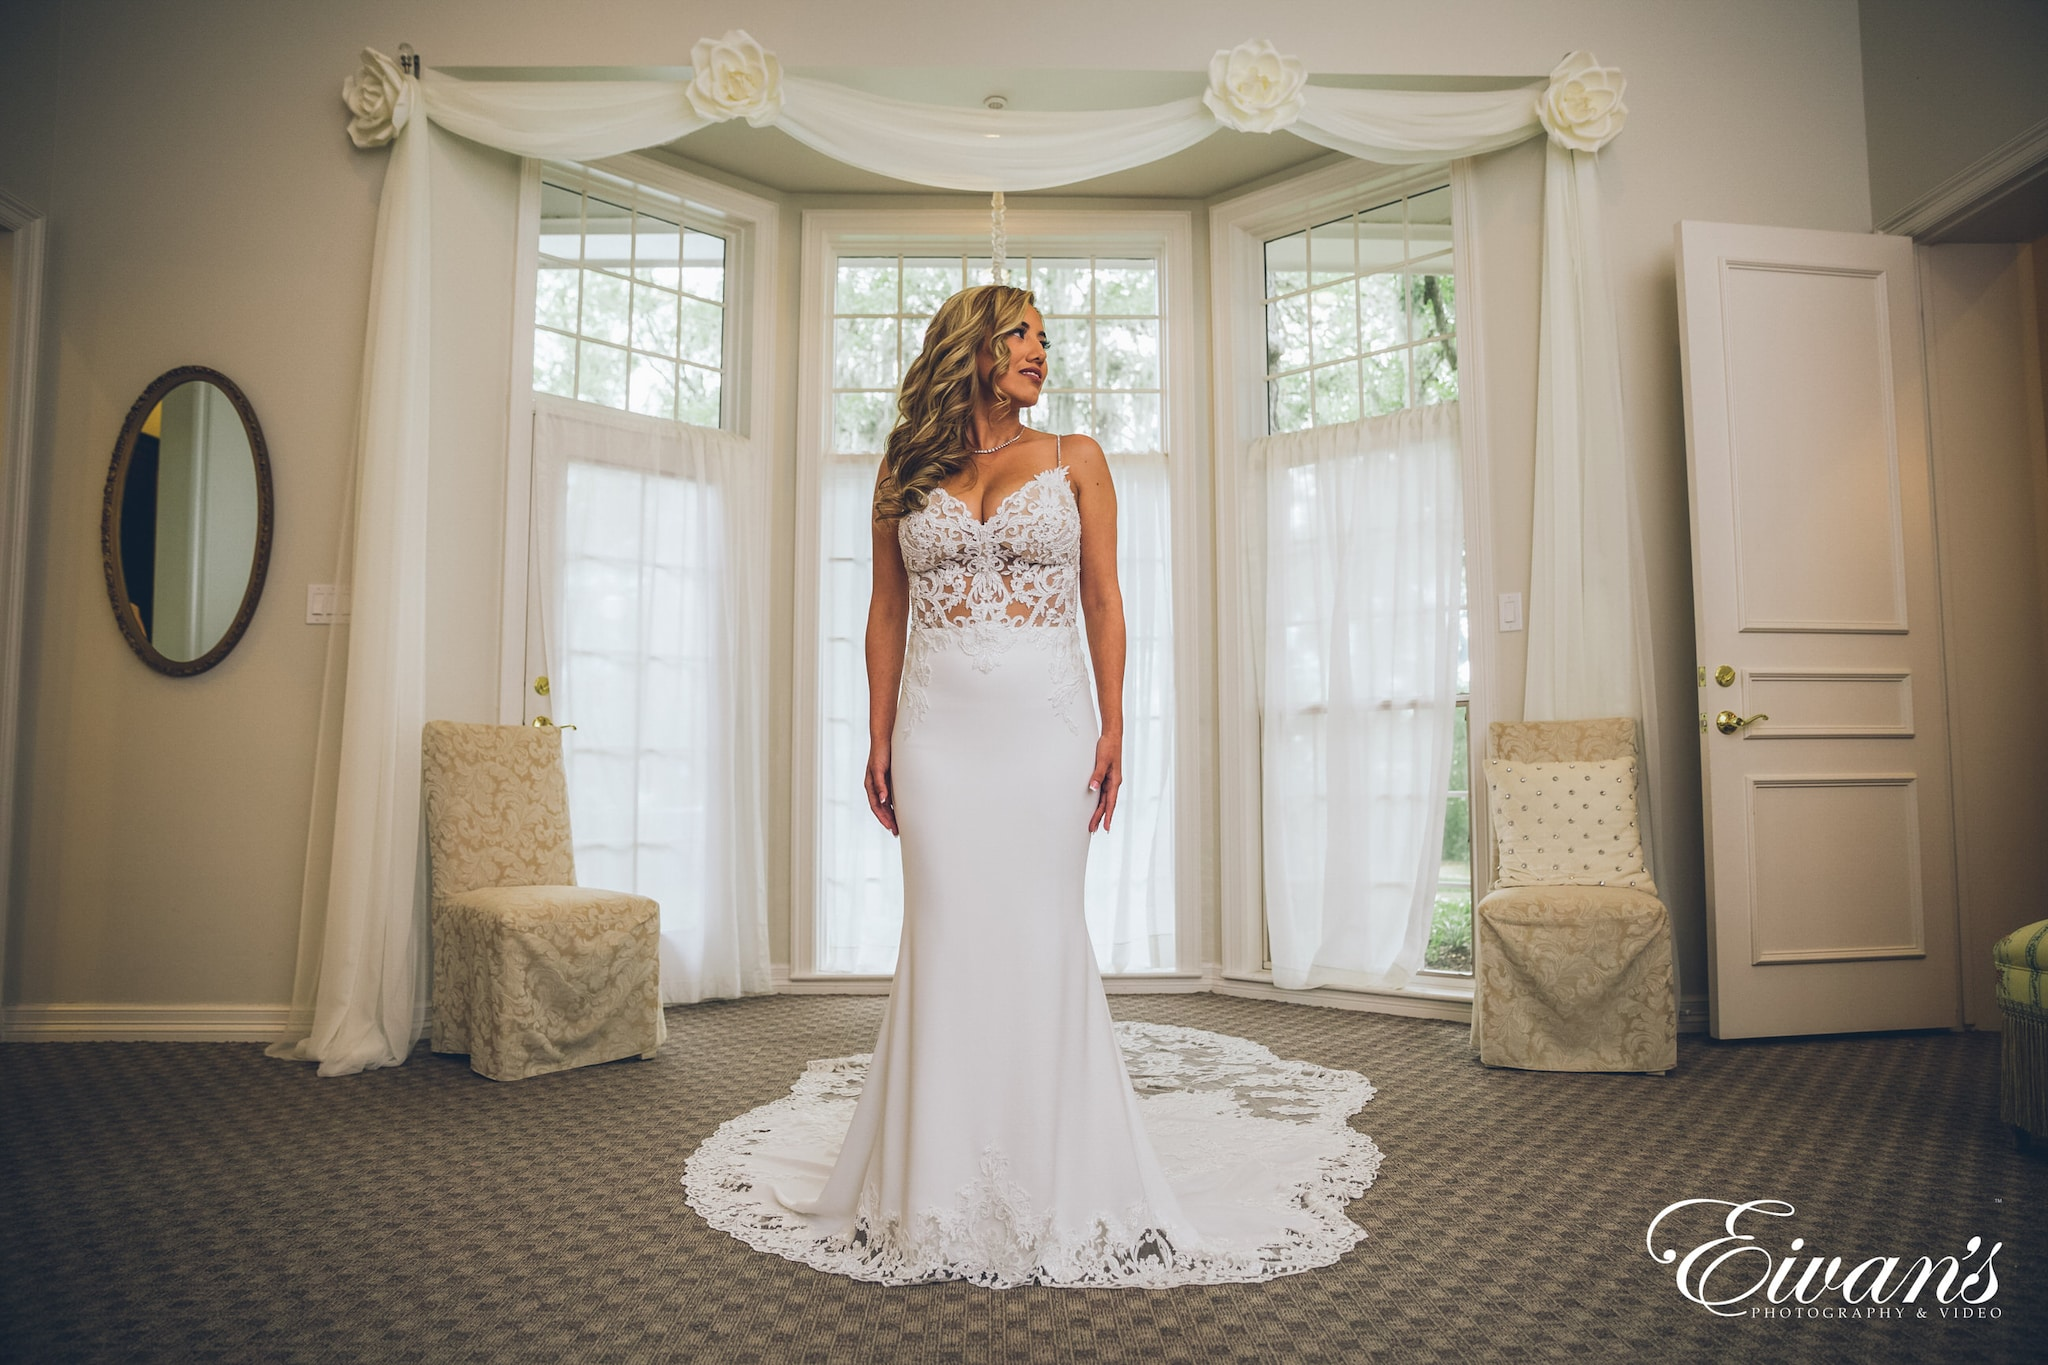 woman in white floral wedding dress standing on gray carpet